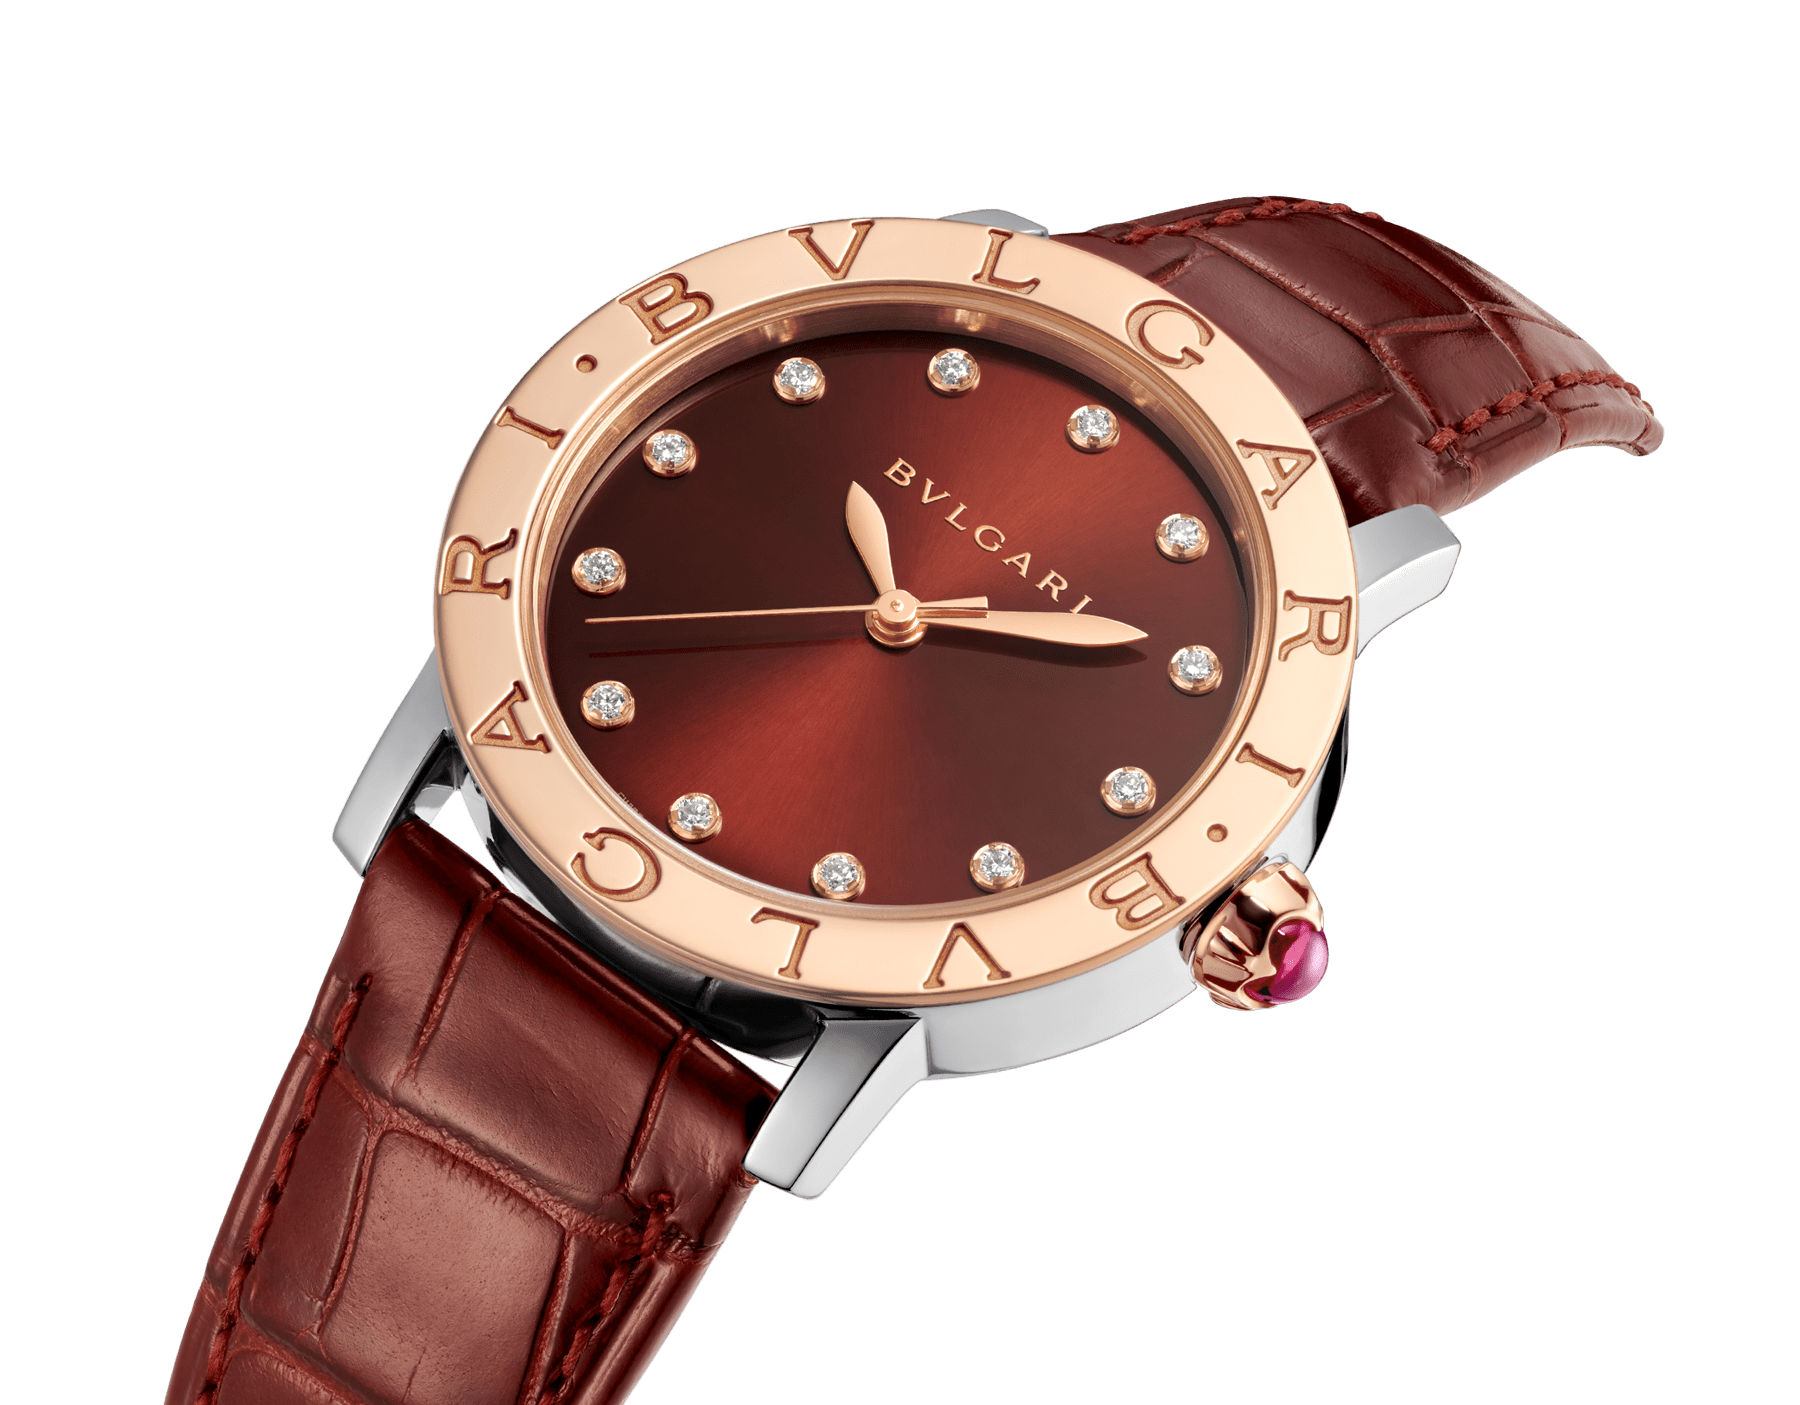 BVLGARI BVLGARI watch with stainless steel case, 18 kt rose gold bezel, brown satiné soleil lacquered dial, golden diamond indexes and shiny dark brown alligator bracelet 102742 image 2